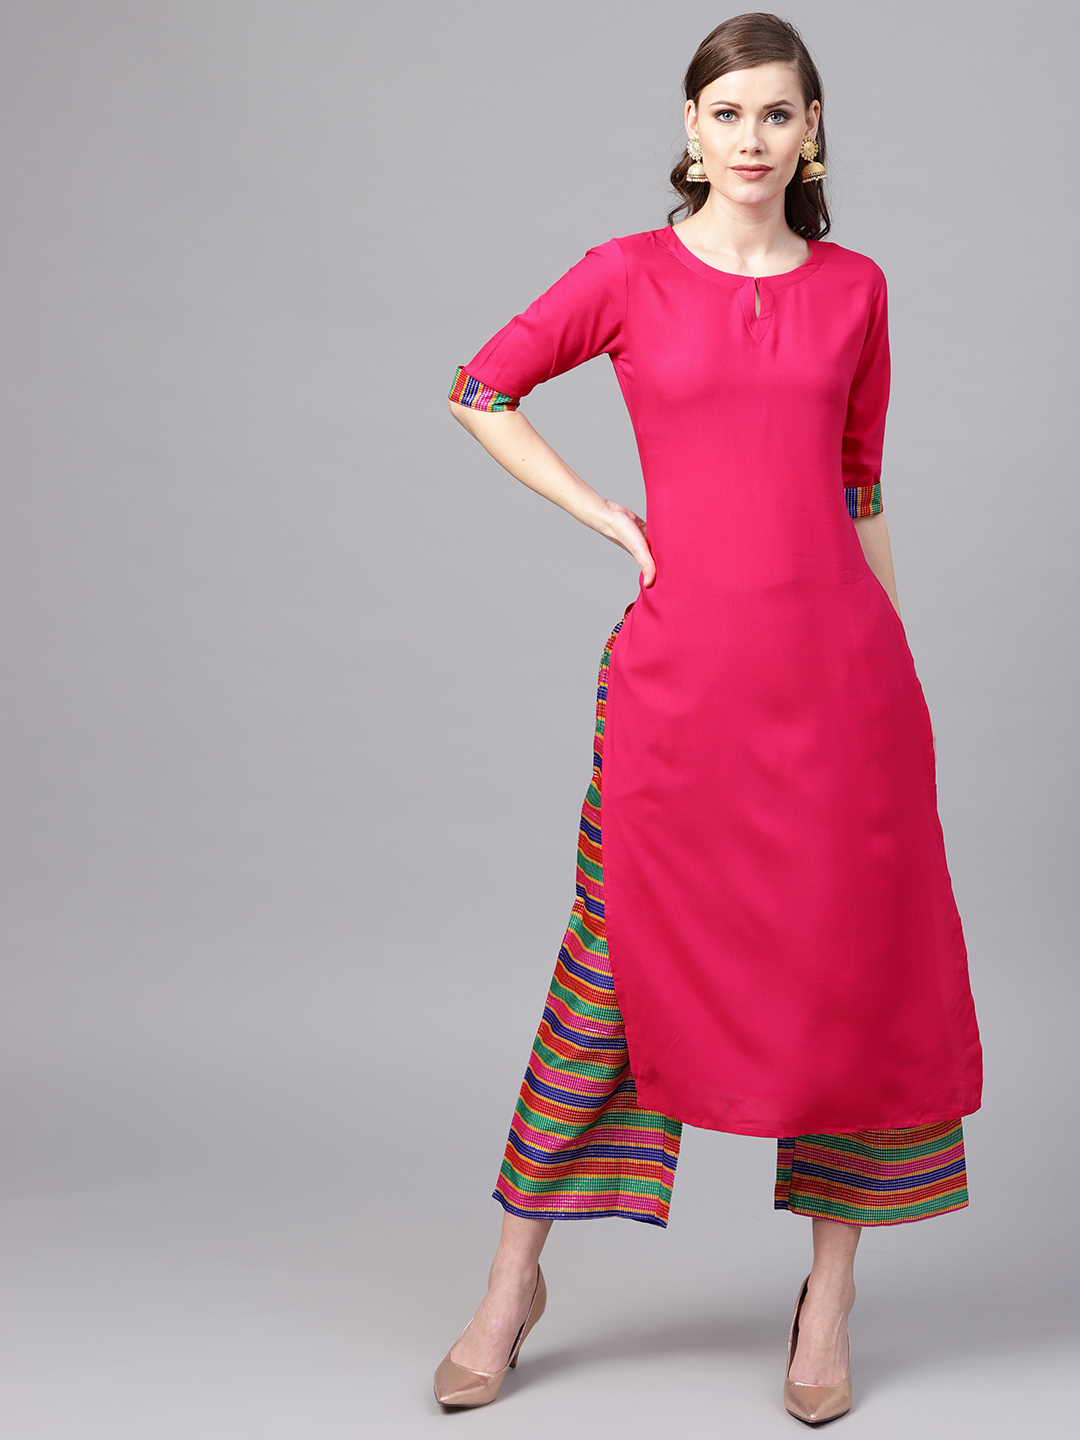 Women's New Stylish Designer Pink Rayon Kurtis With Plazzo